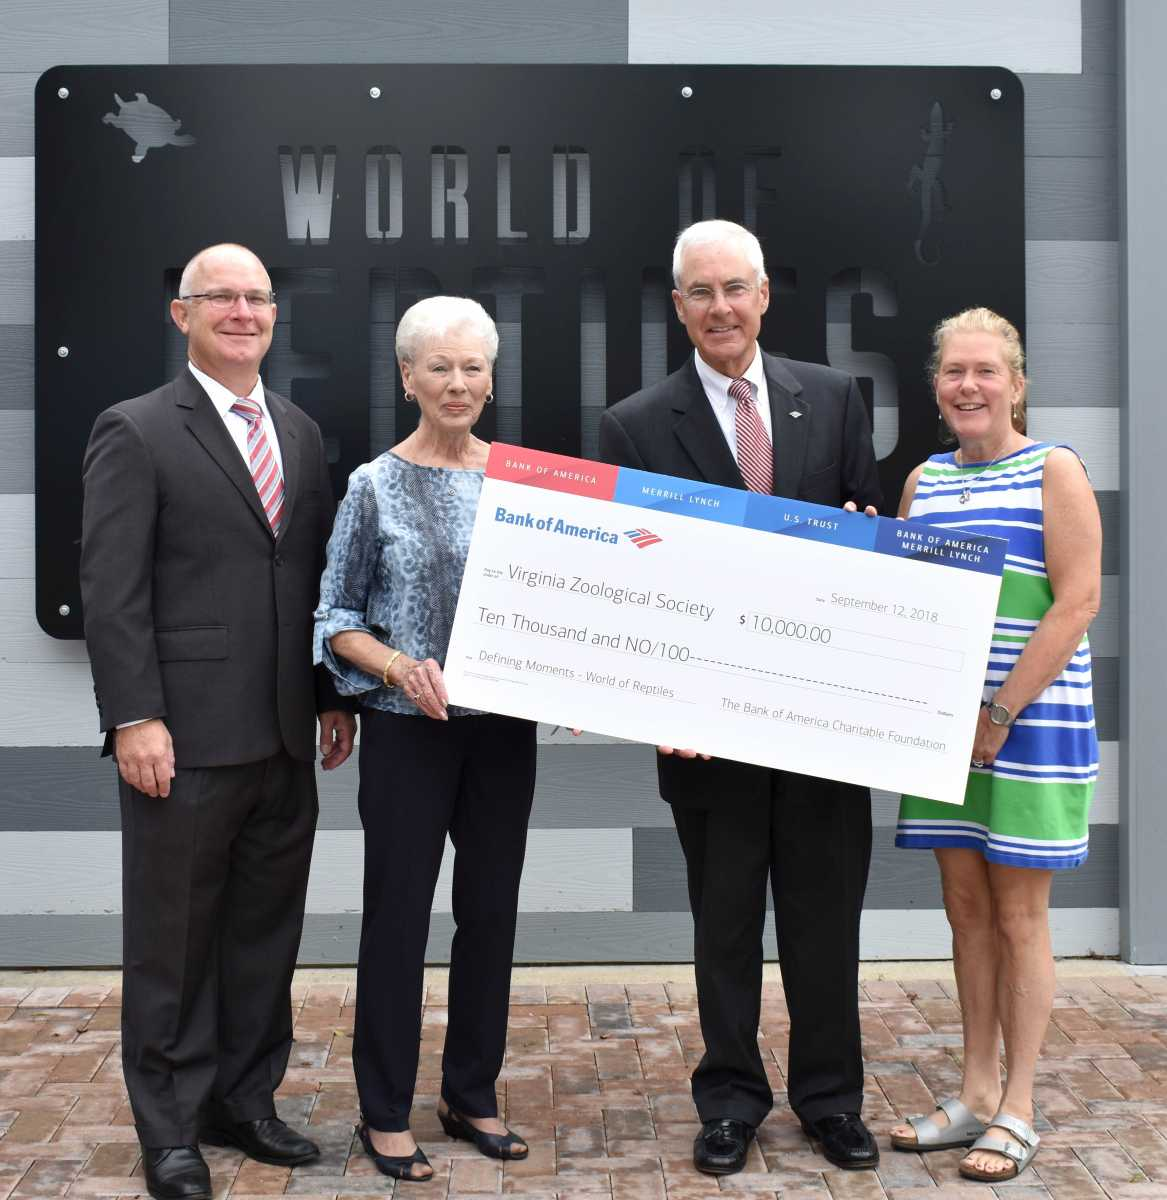 Bank of America Supports Virginia Zoo World of Reptiles